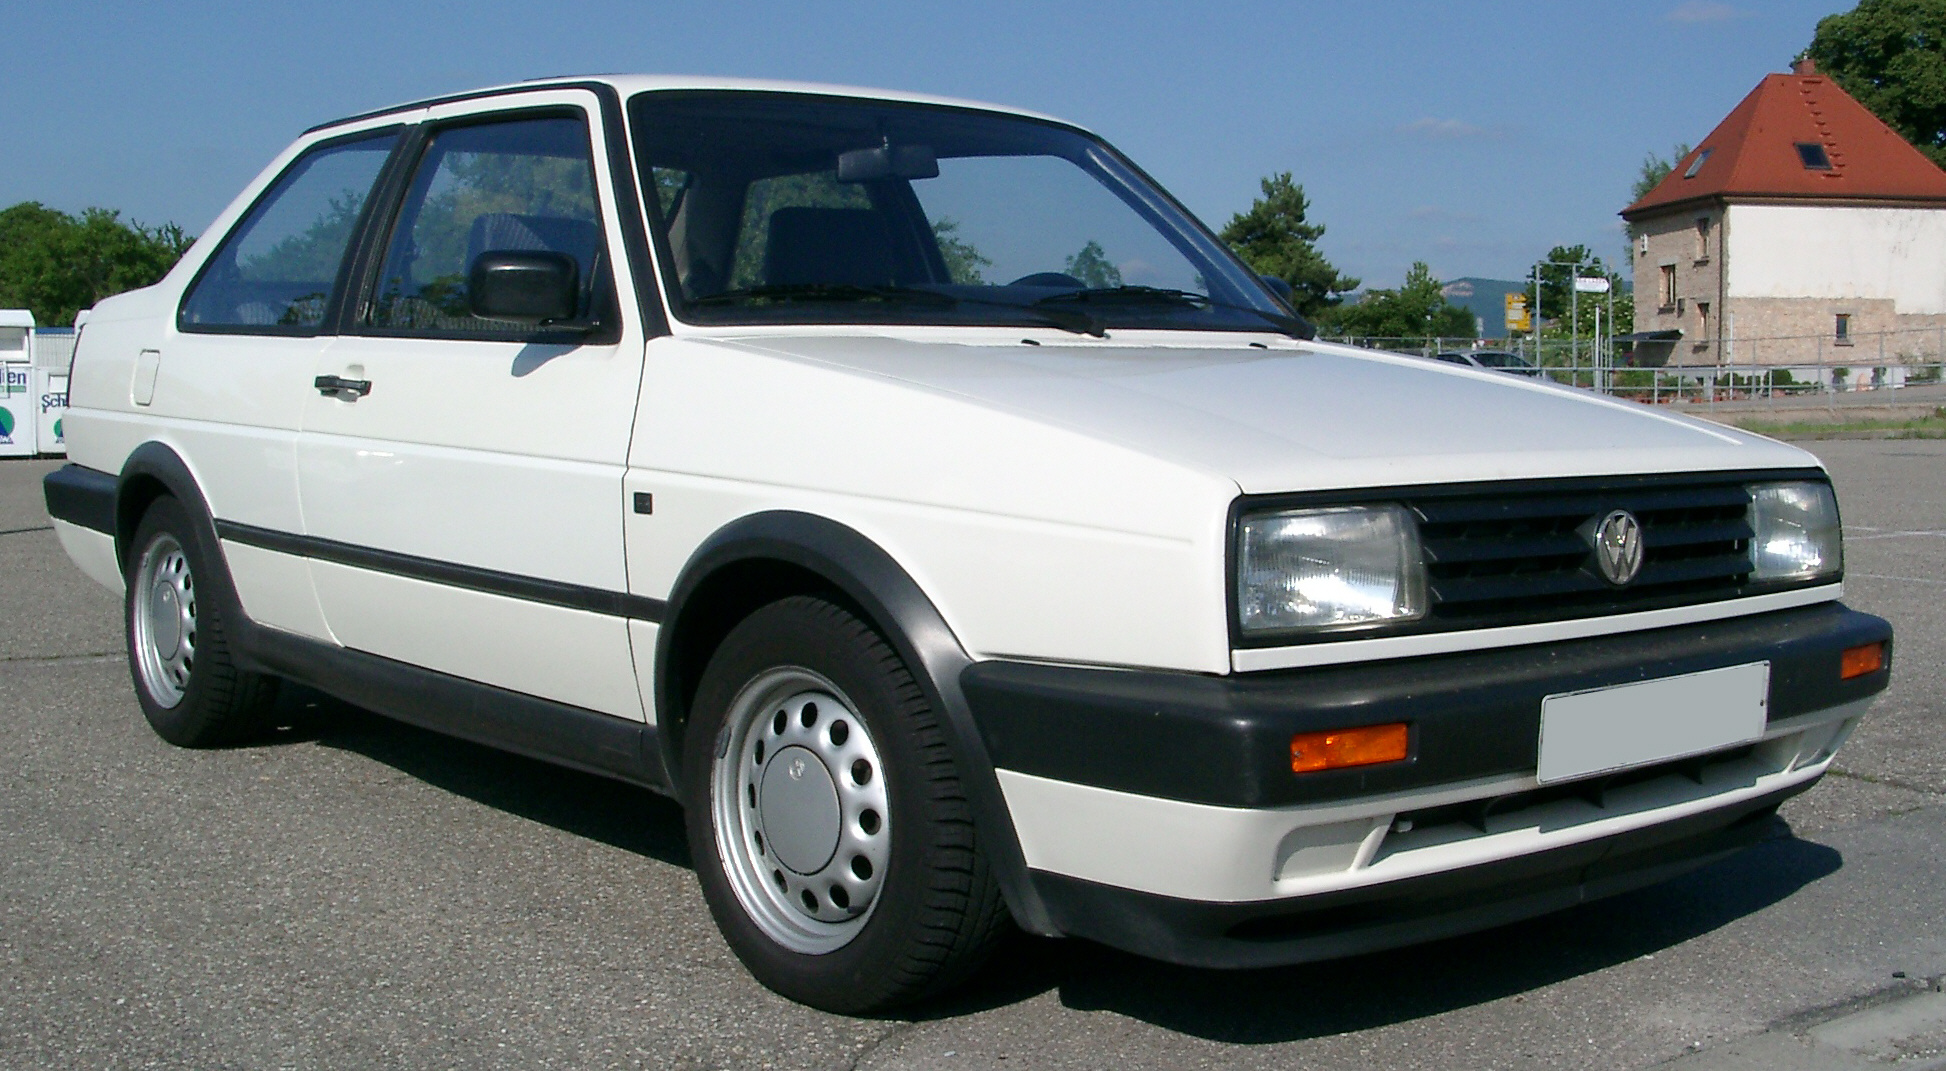 VW Jetta photo 10